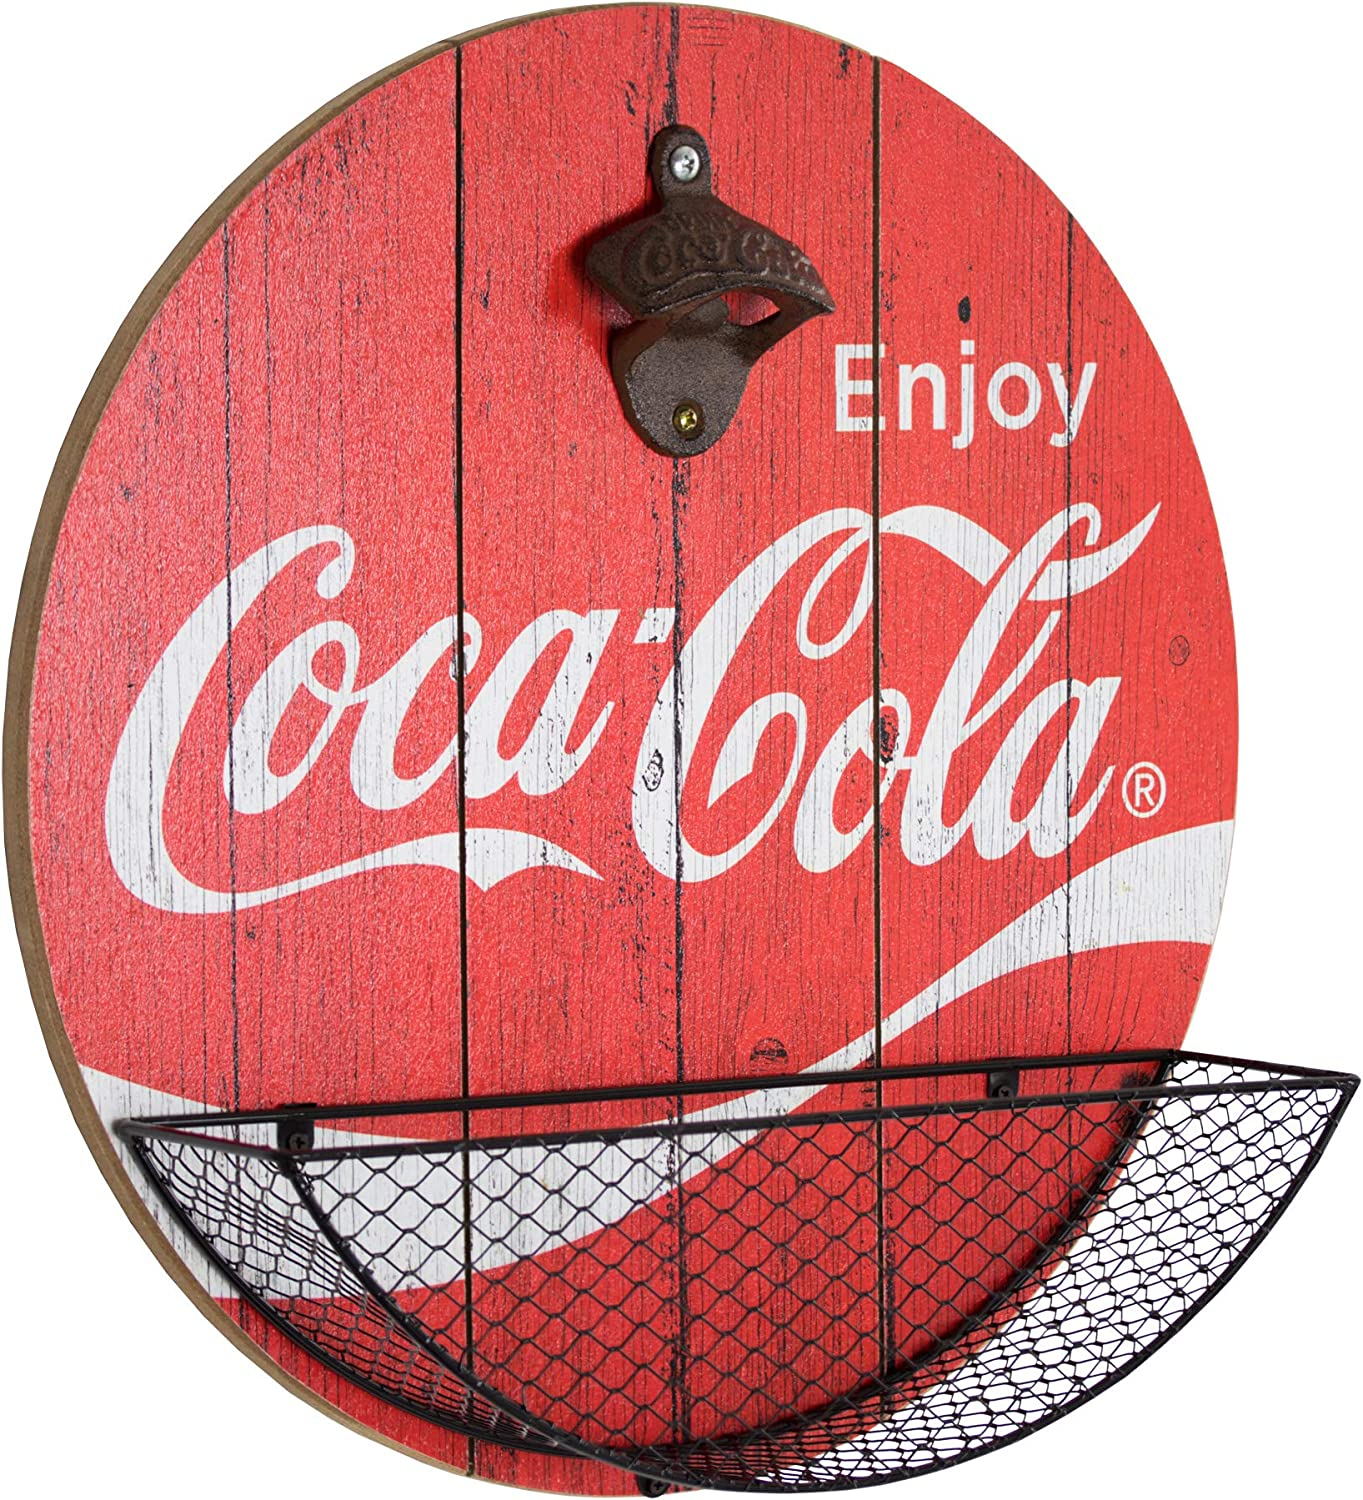 Inventory cleanup selling sale New Free Shipping Officially Licensed Vintage Coca Cola Catc Opener Cap Bottle and